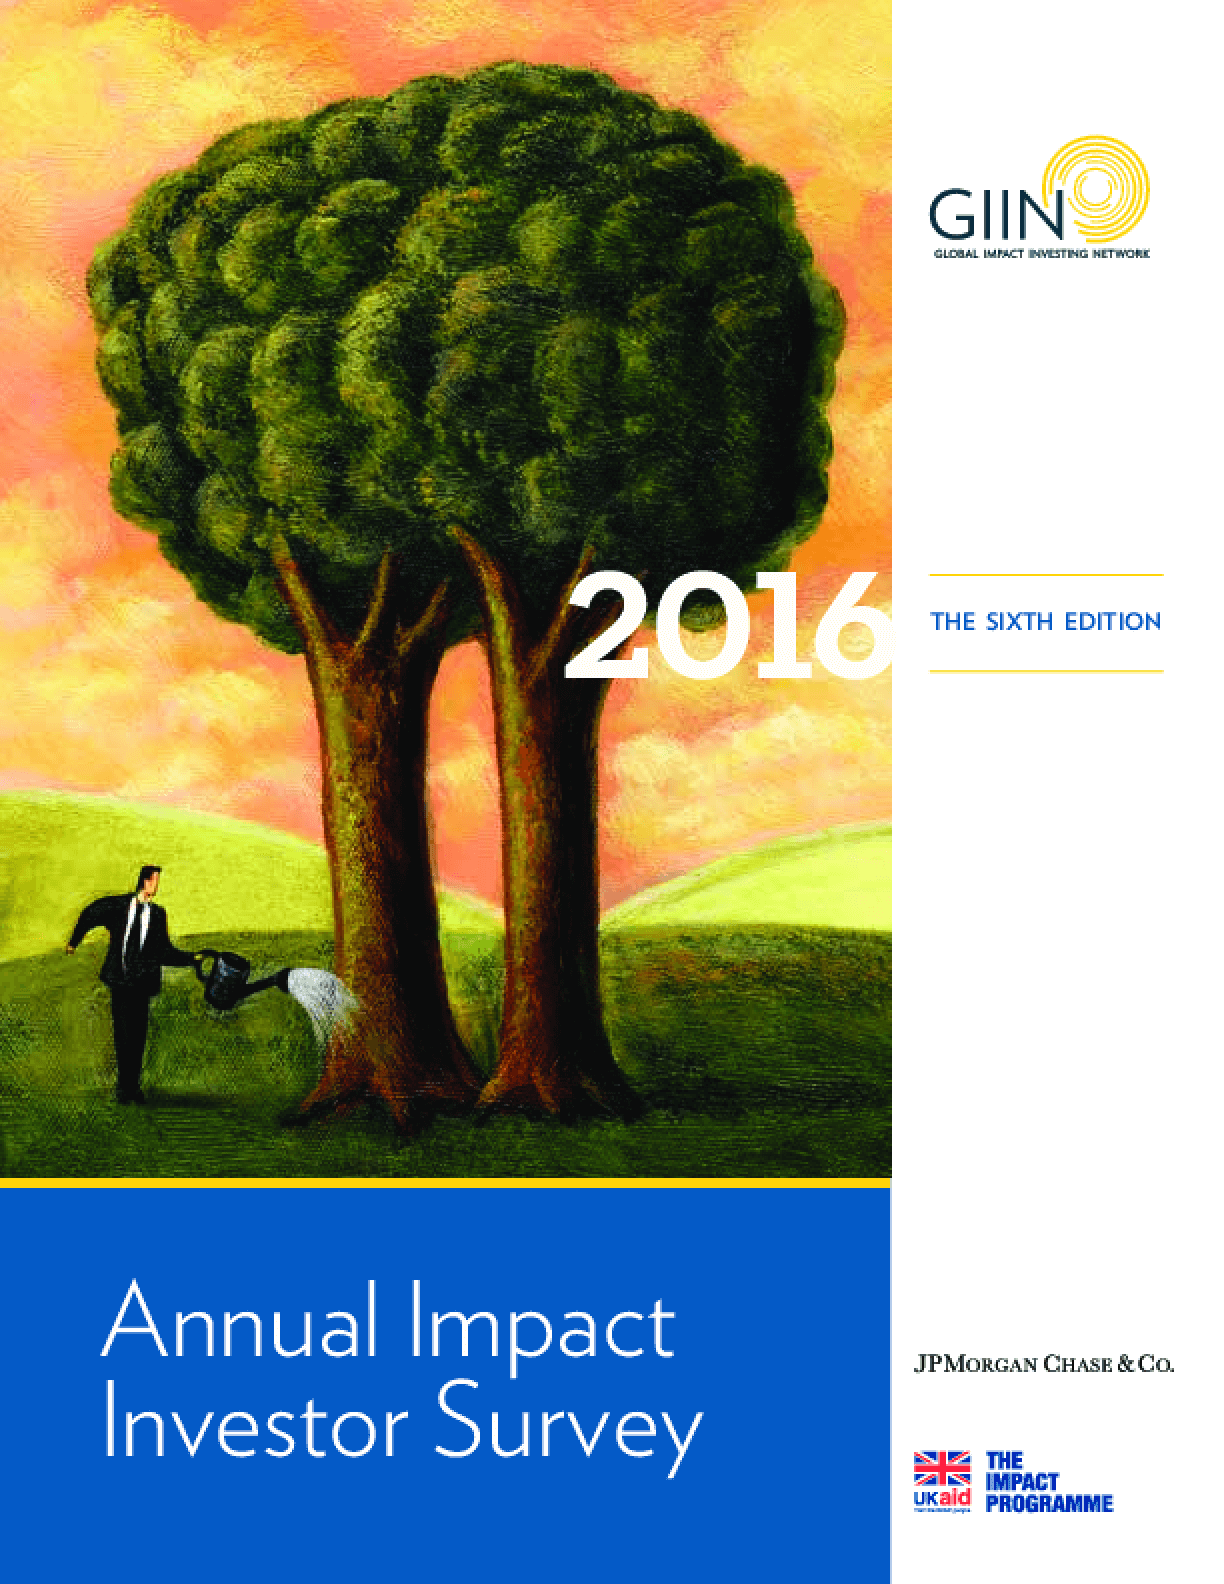 2016 Annual Impact Investor Survey